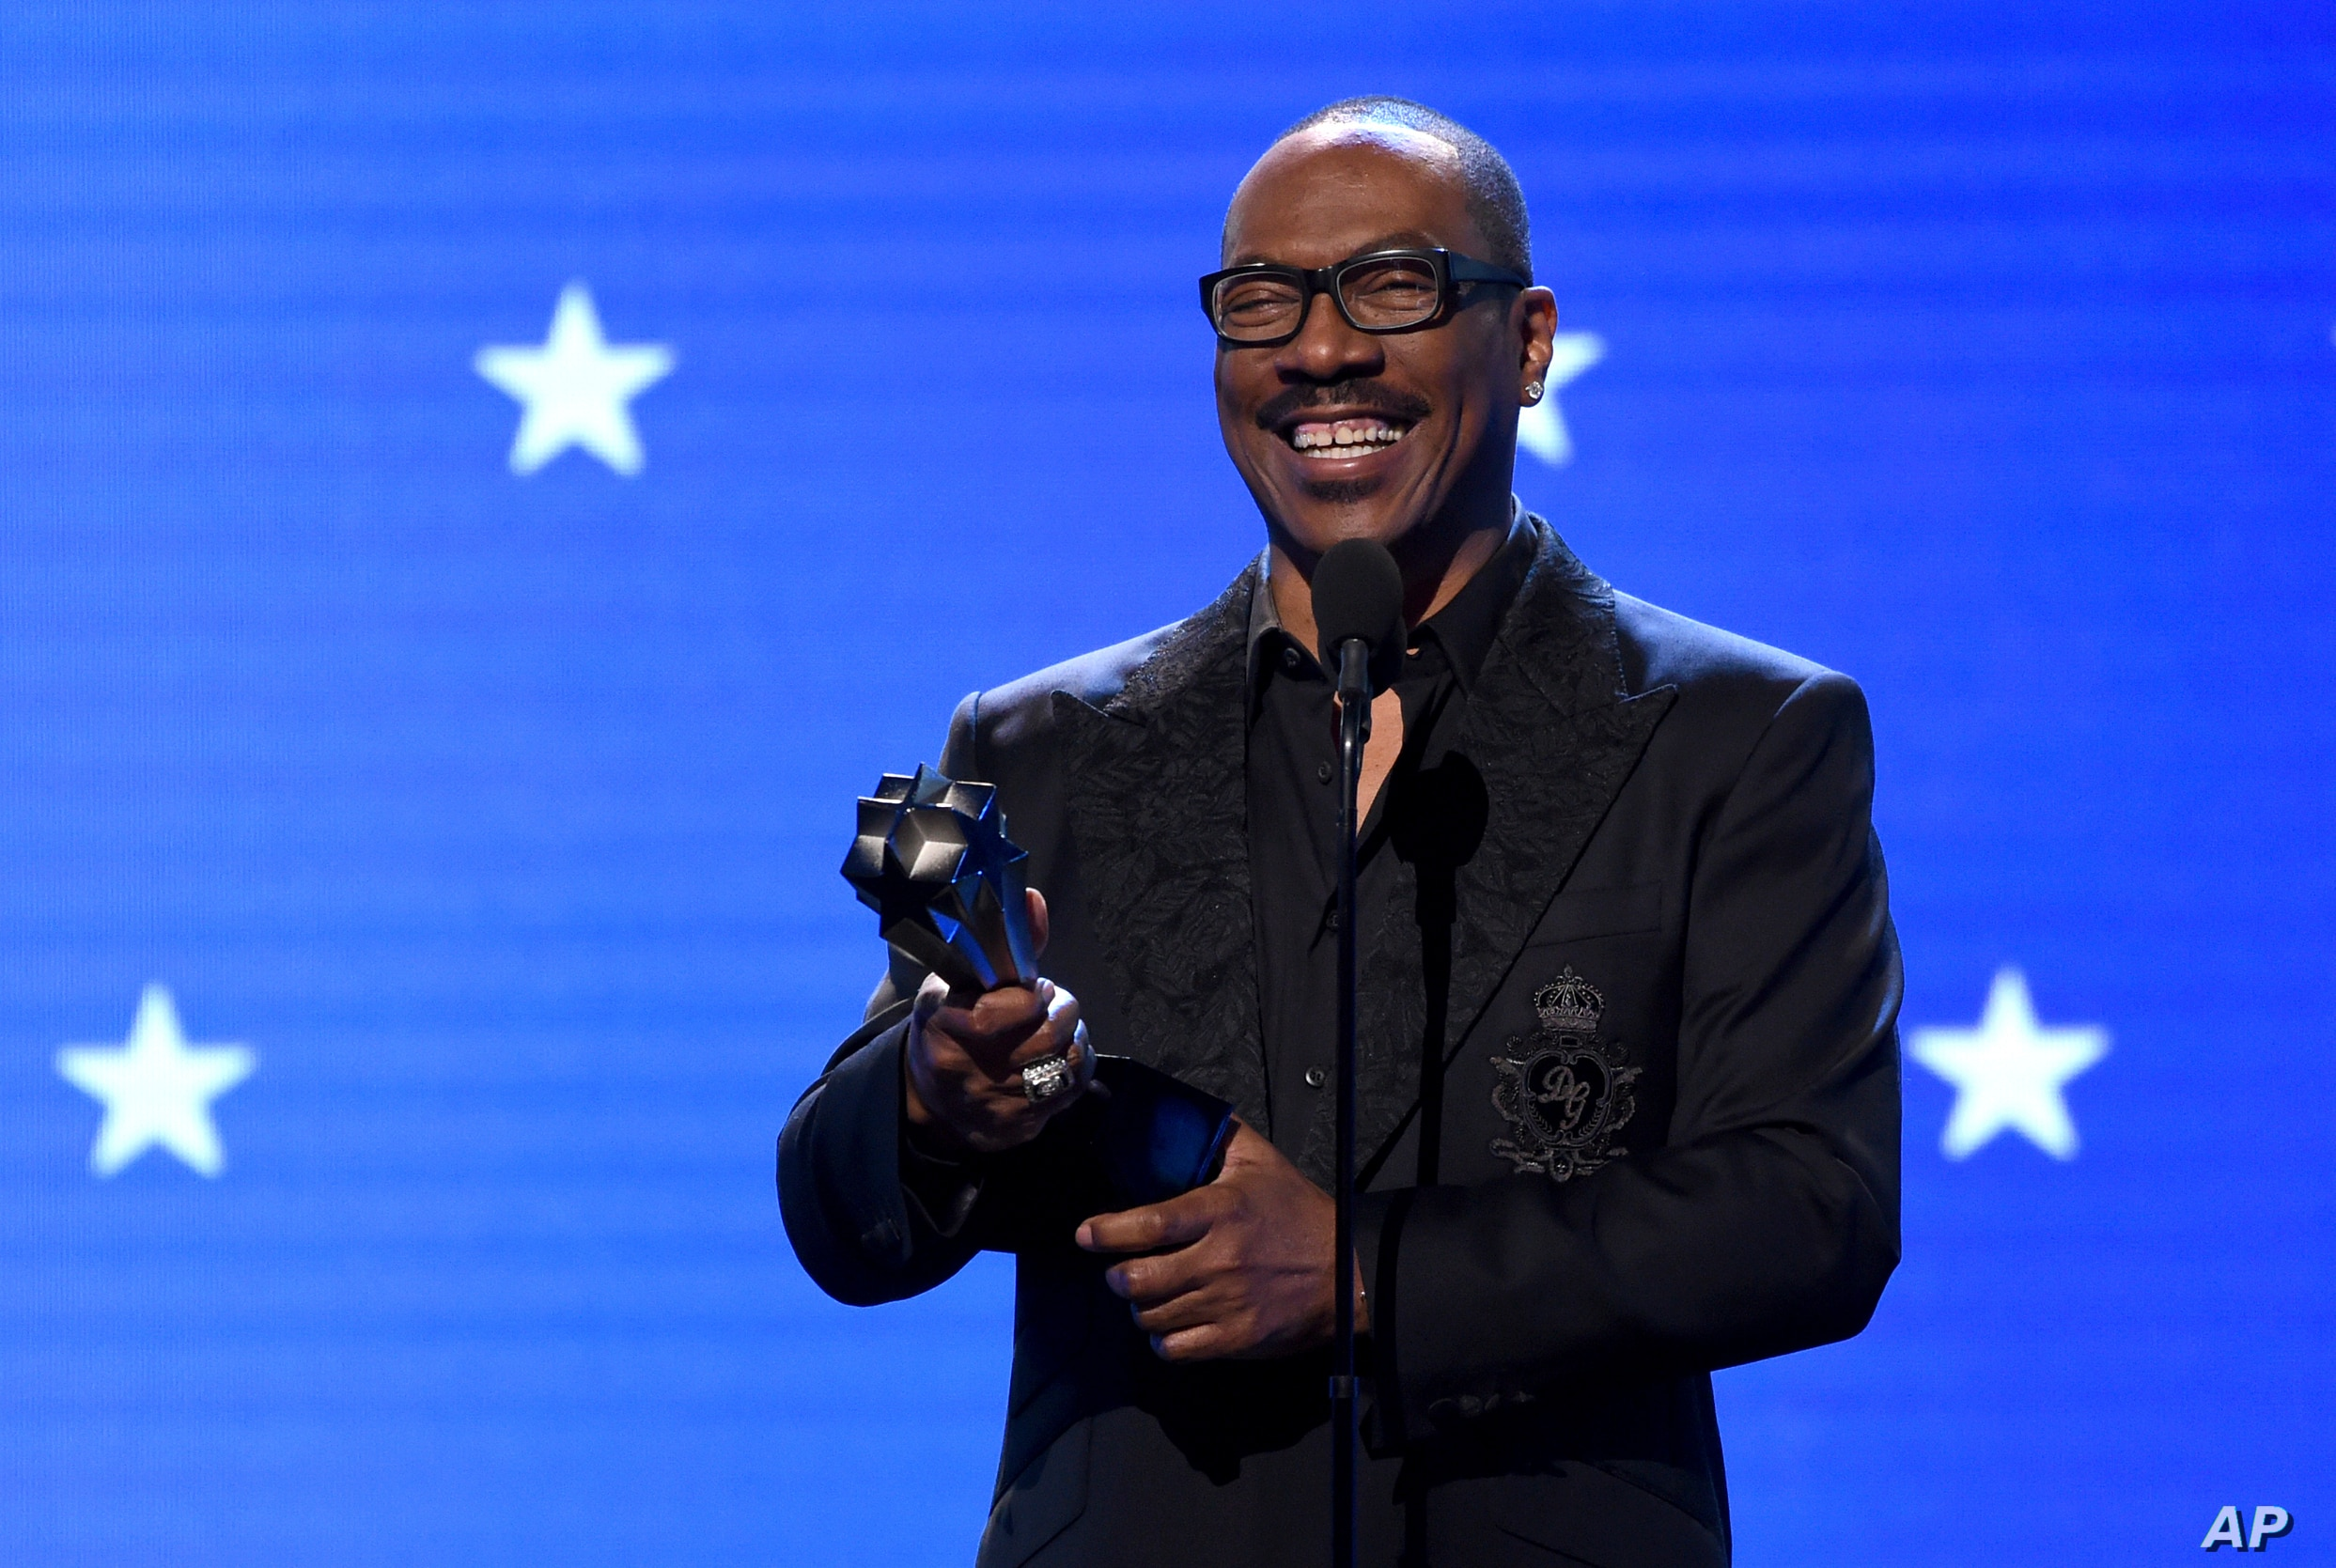 WATCH: Actor-Comedian Eddie Murphy inducted into NAACP Image Awards Hall of Fame